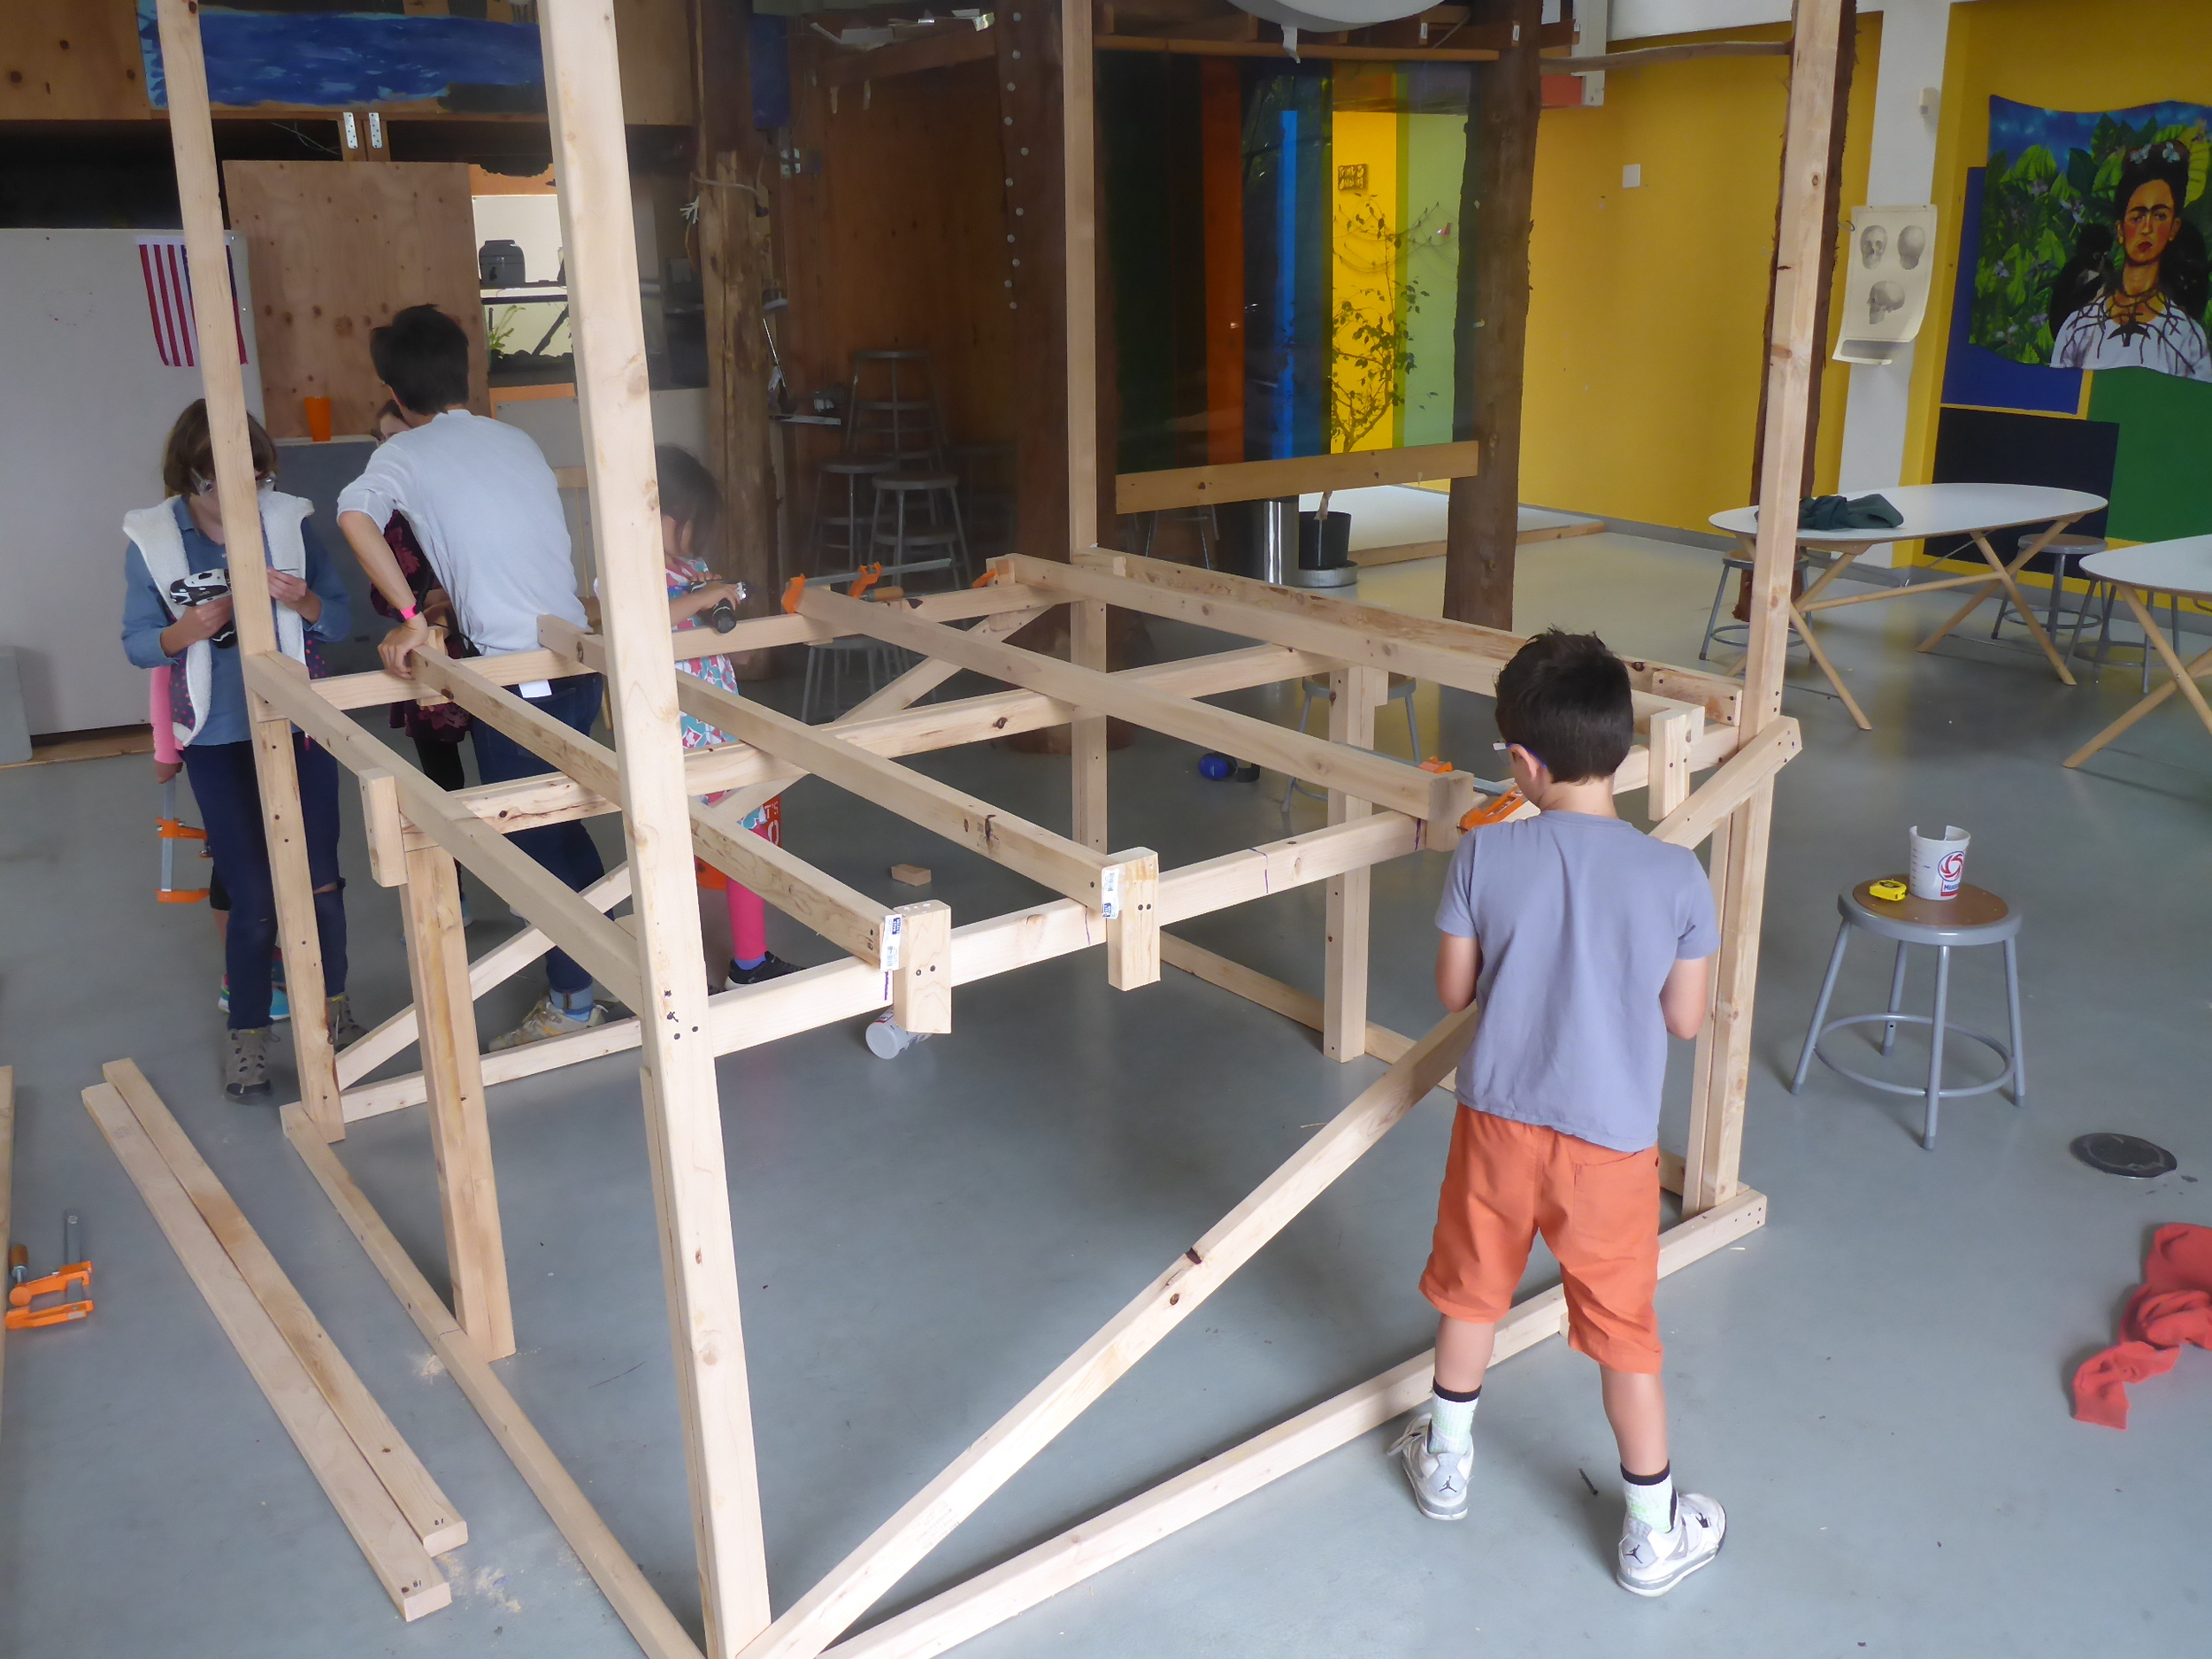 Floor building in progress! Check out the solution for connecting the supports to the frame!